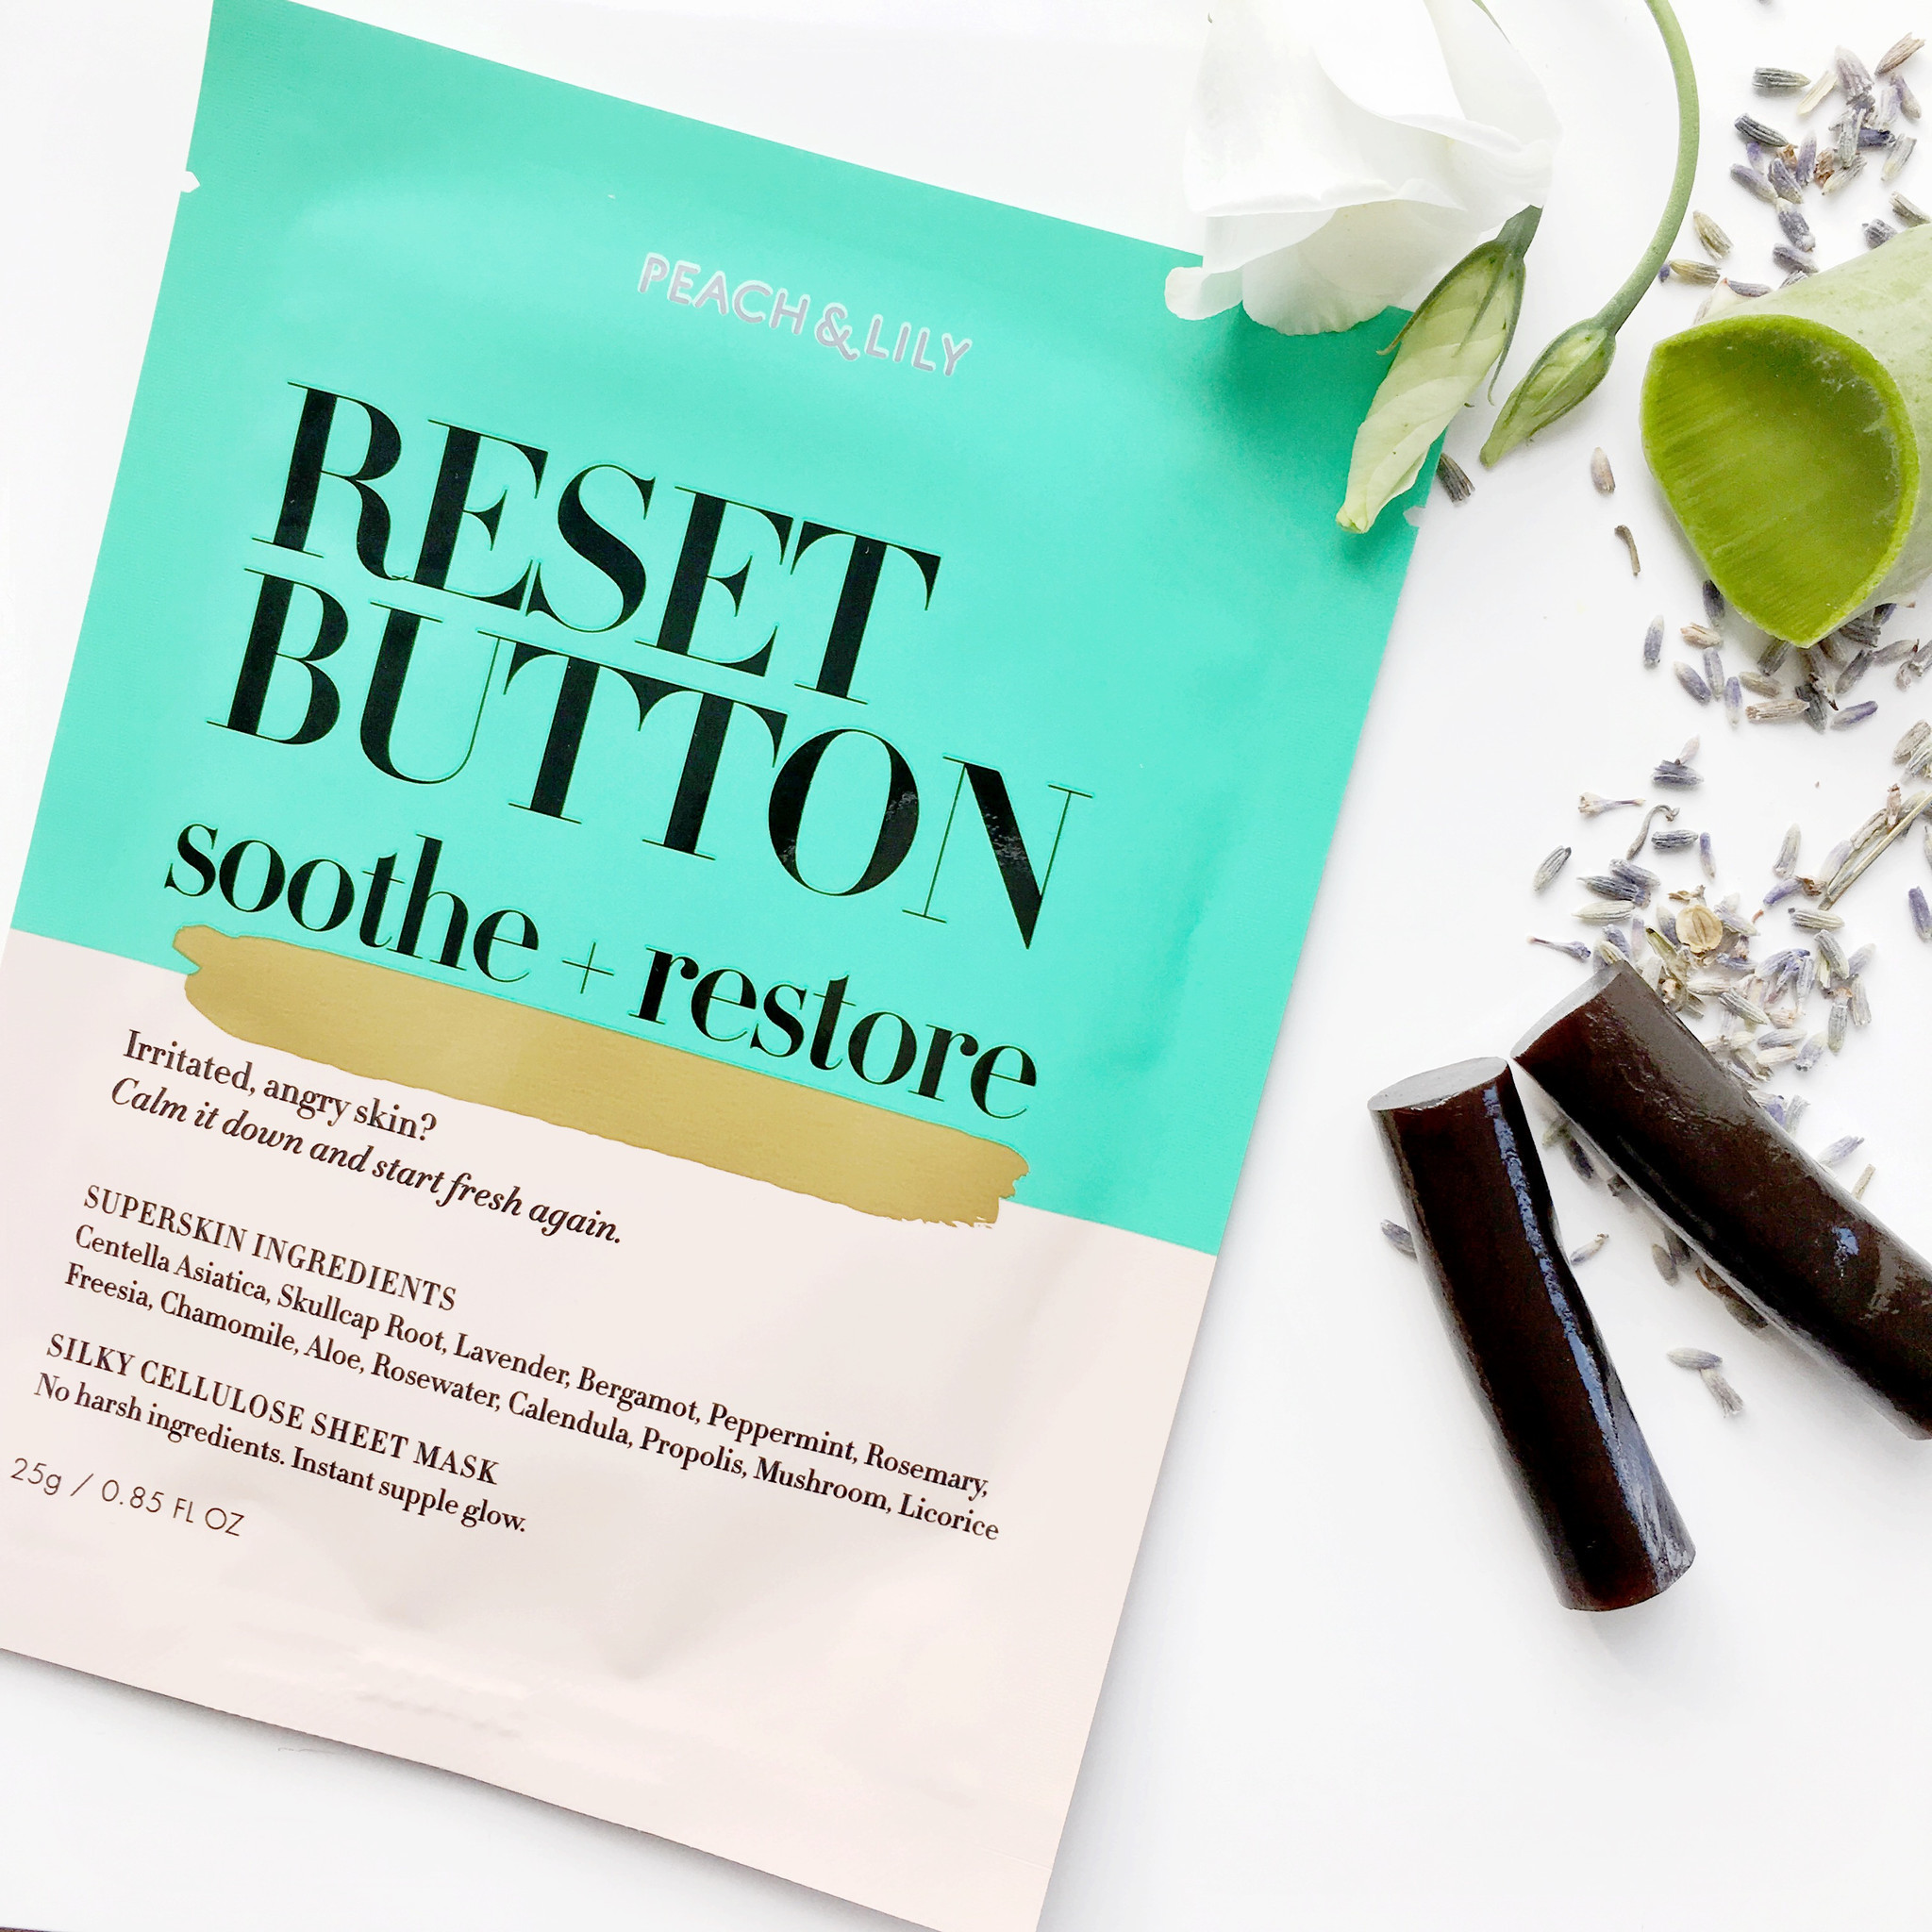 Peach and Lily Reset Button Soothe + Restore Sheet Mask